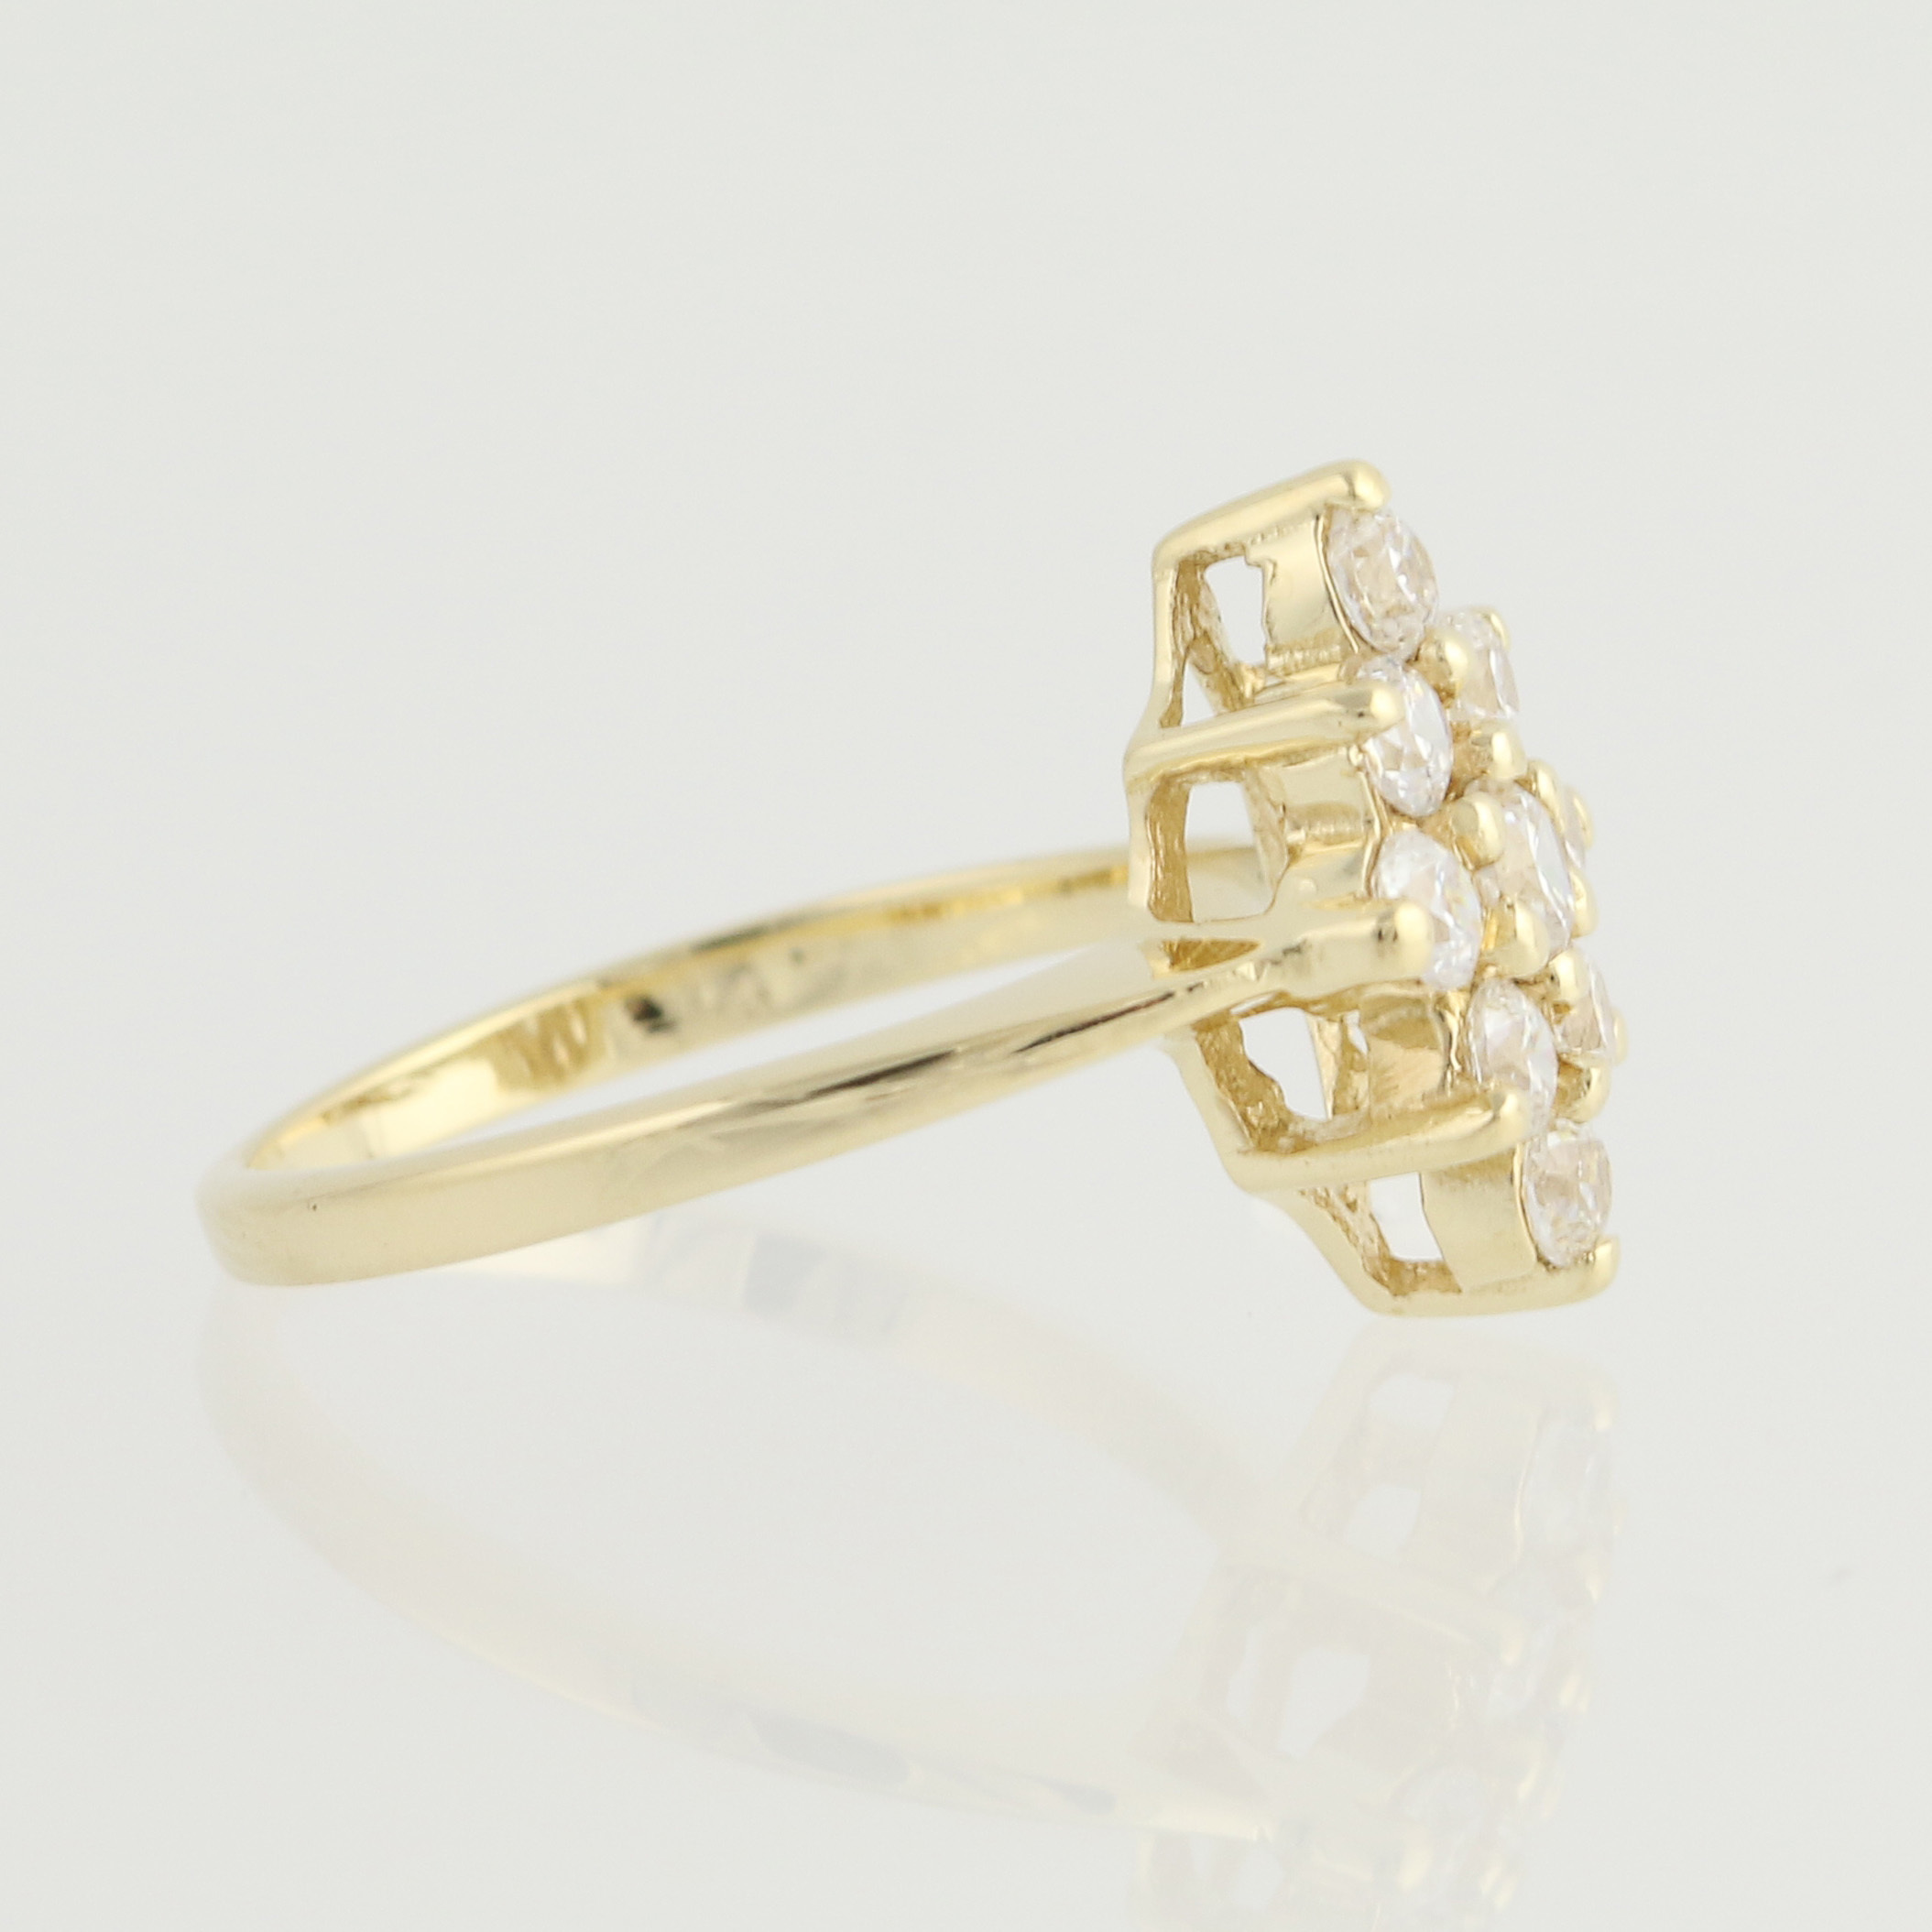 cubic zirconia cluster ring 14k yellow gold s size